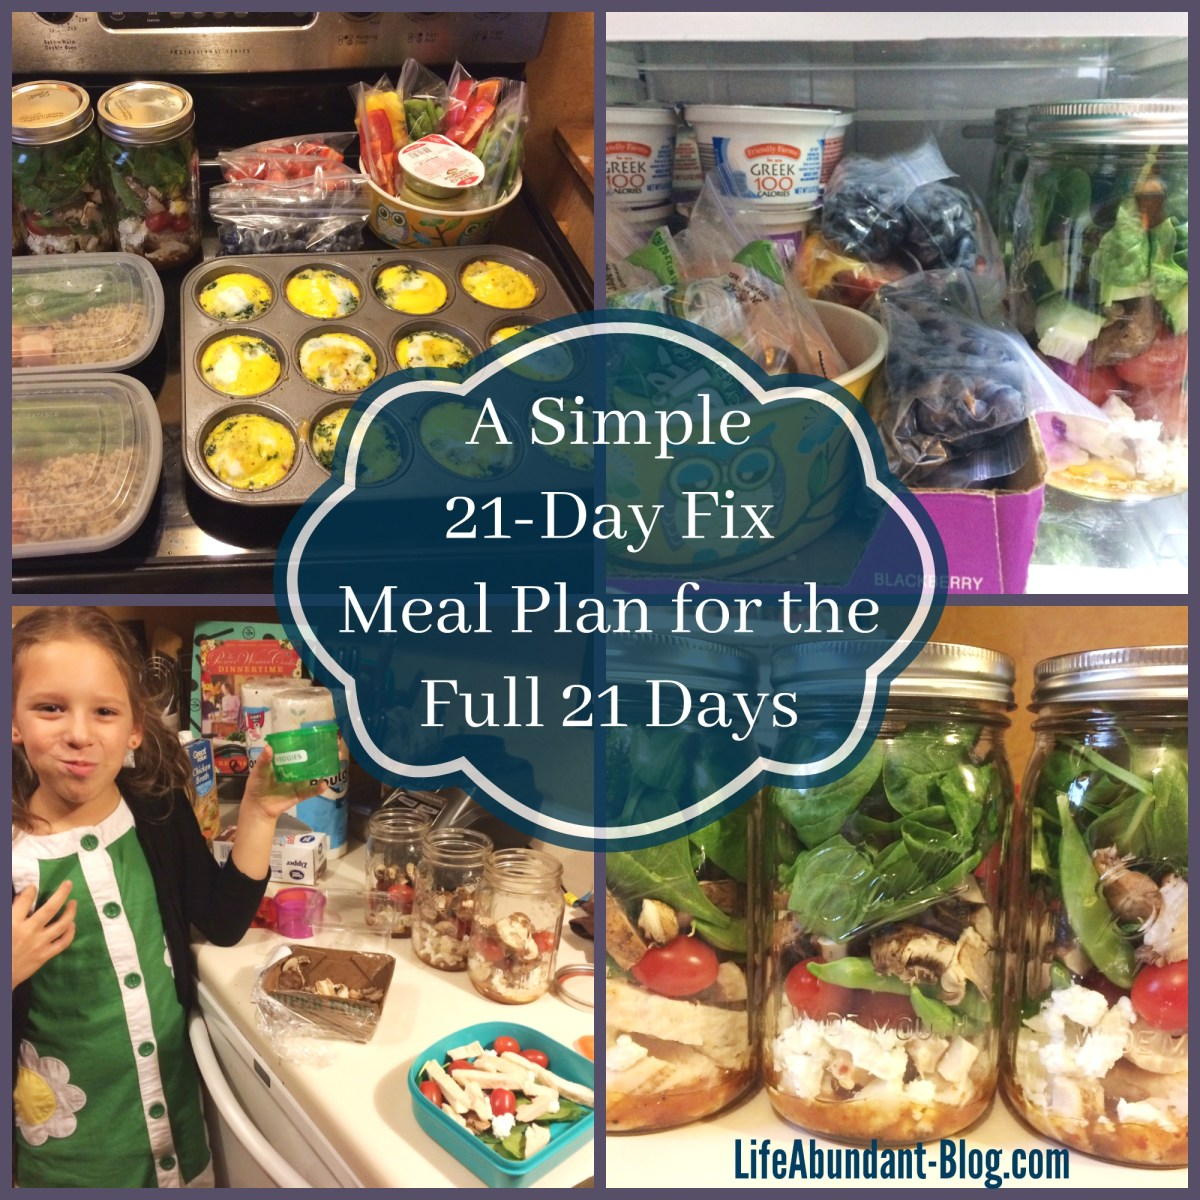 A Simple 21-Day Fix Meal Plan for the Full 21 Days